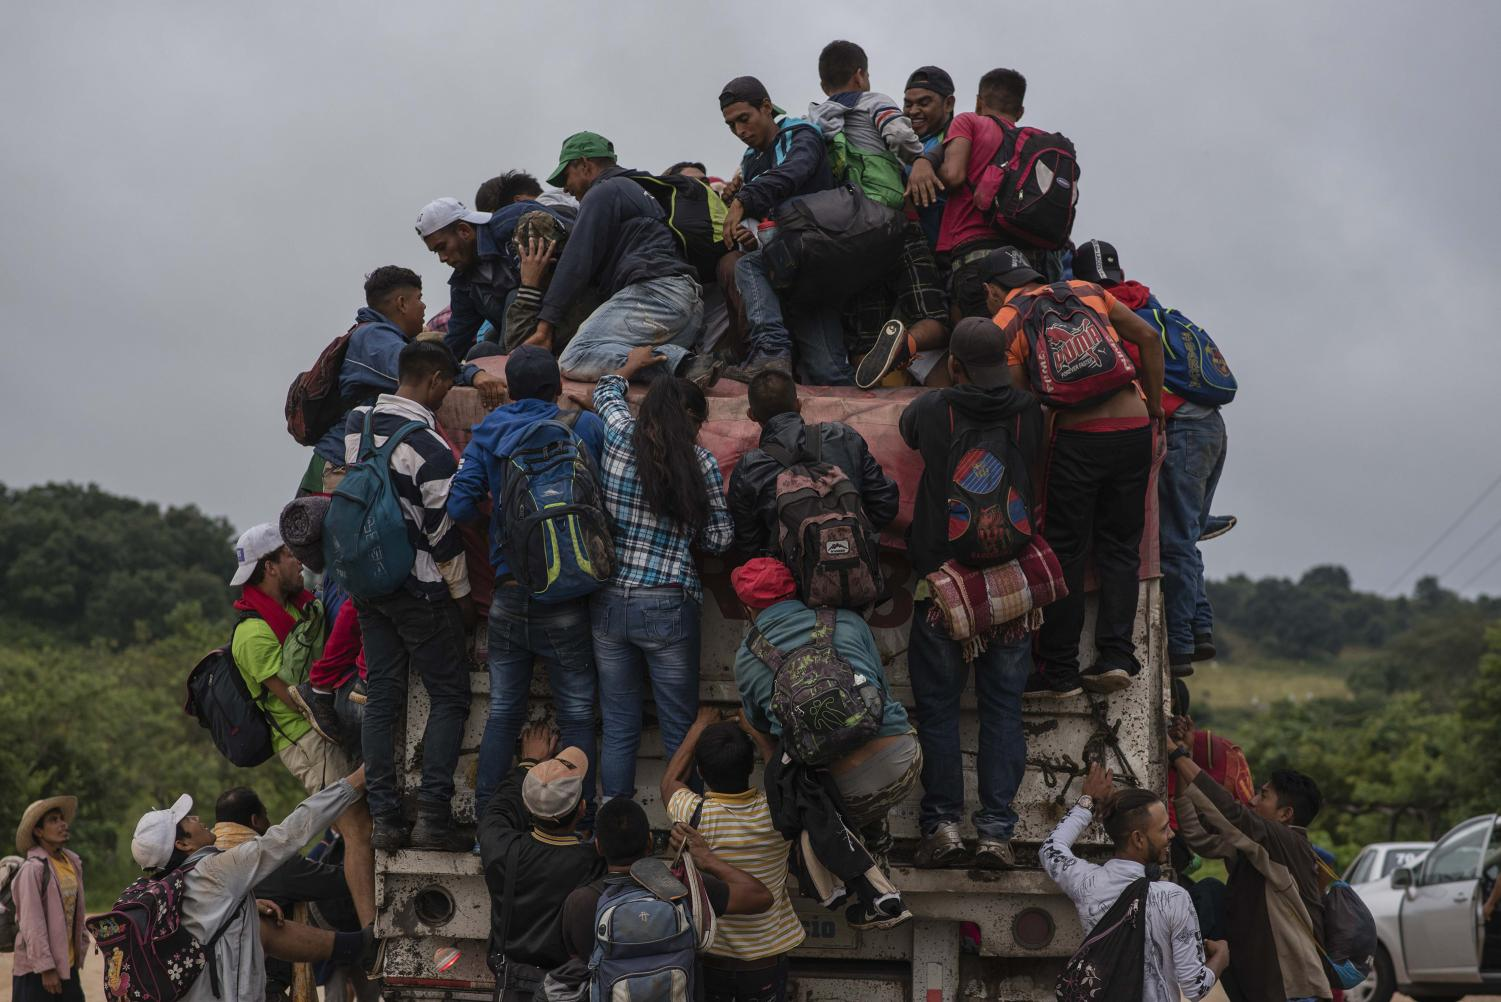 Migrants jump on a truck in order not to have to walk a part of their long way on Nov. 3, 2018 in Sayula, Veracruz, Mexico. Most of the migrants come from Honduras. They are currently on their way through Mexico towards the U.S. border.